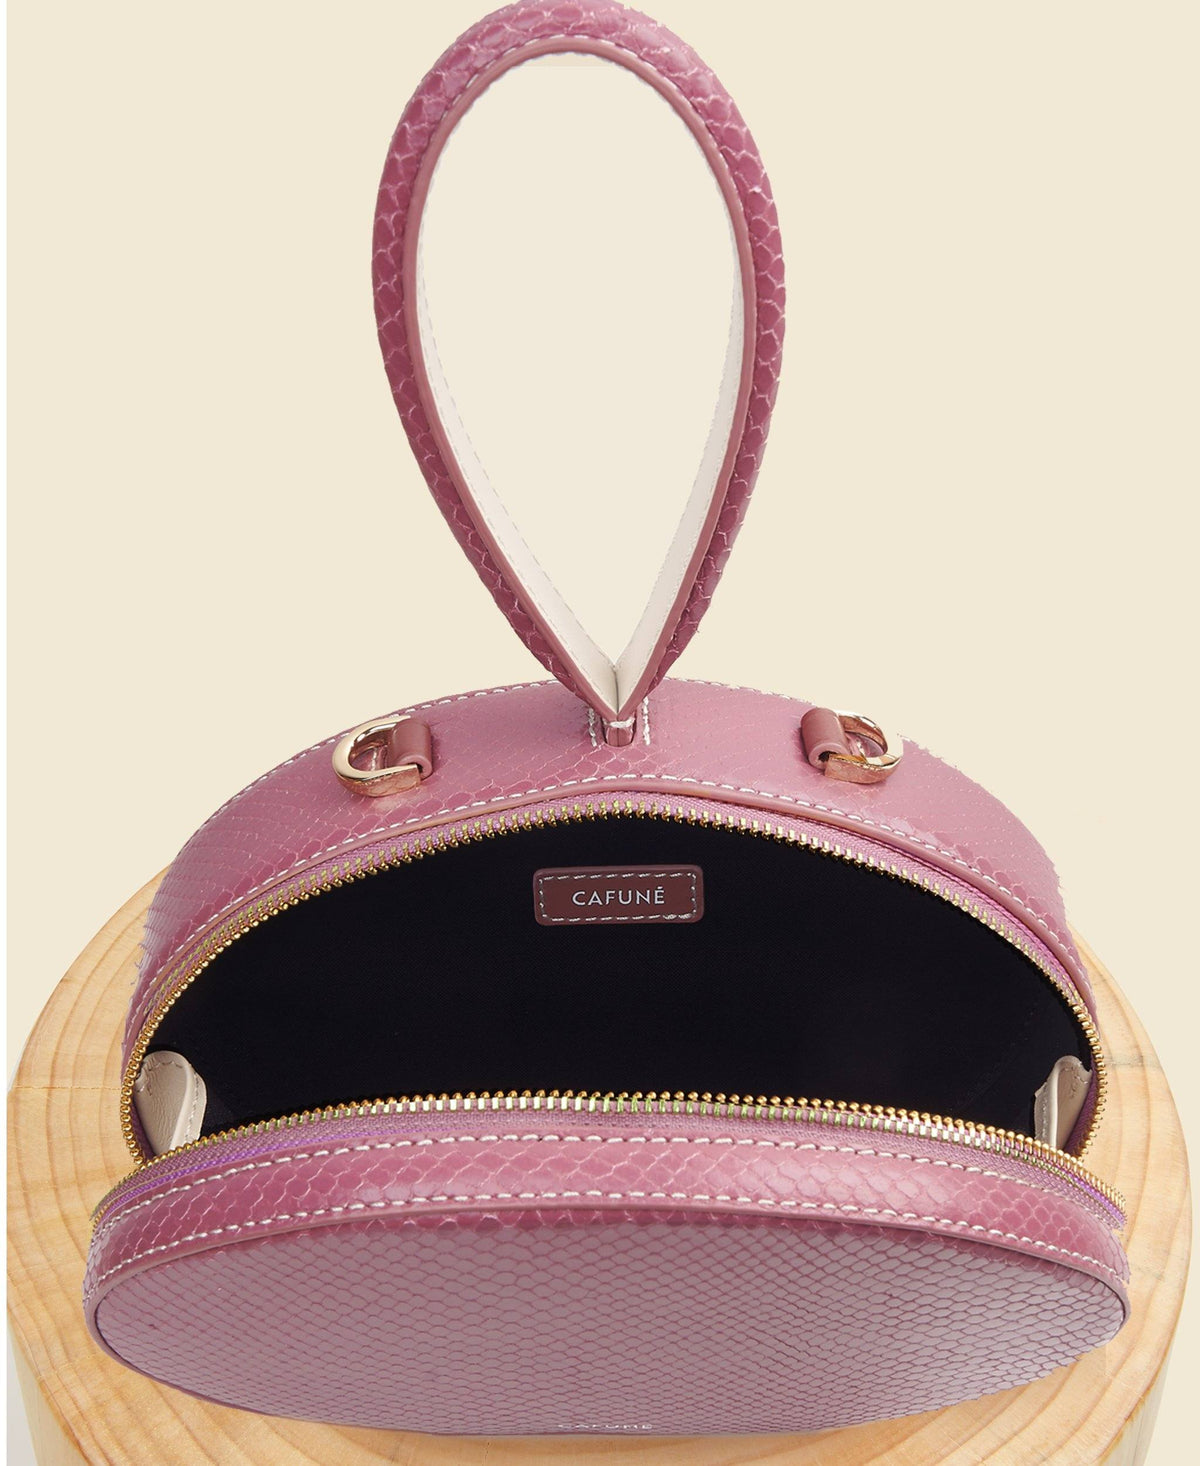 Cafuné Egg Bag in Mauve